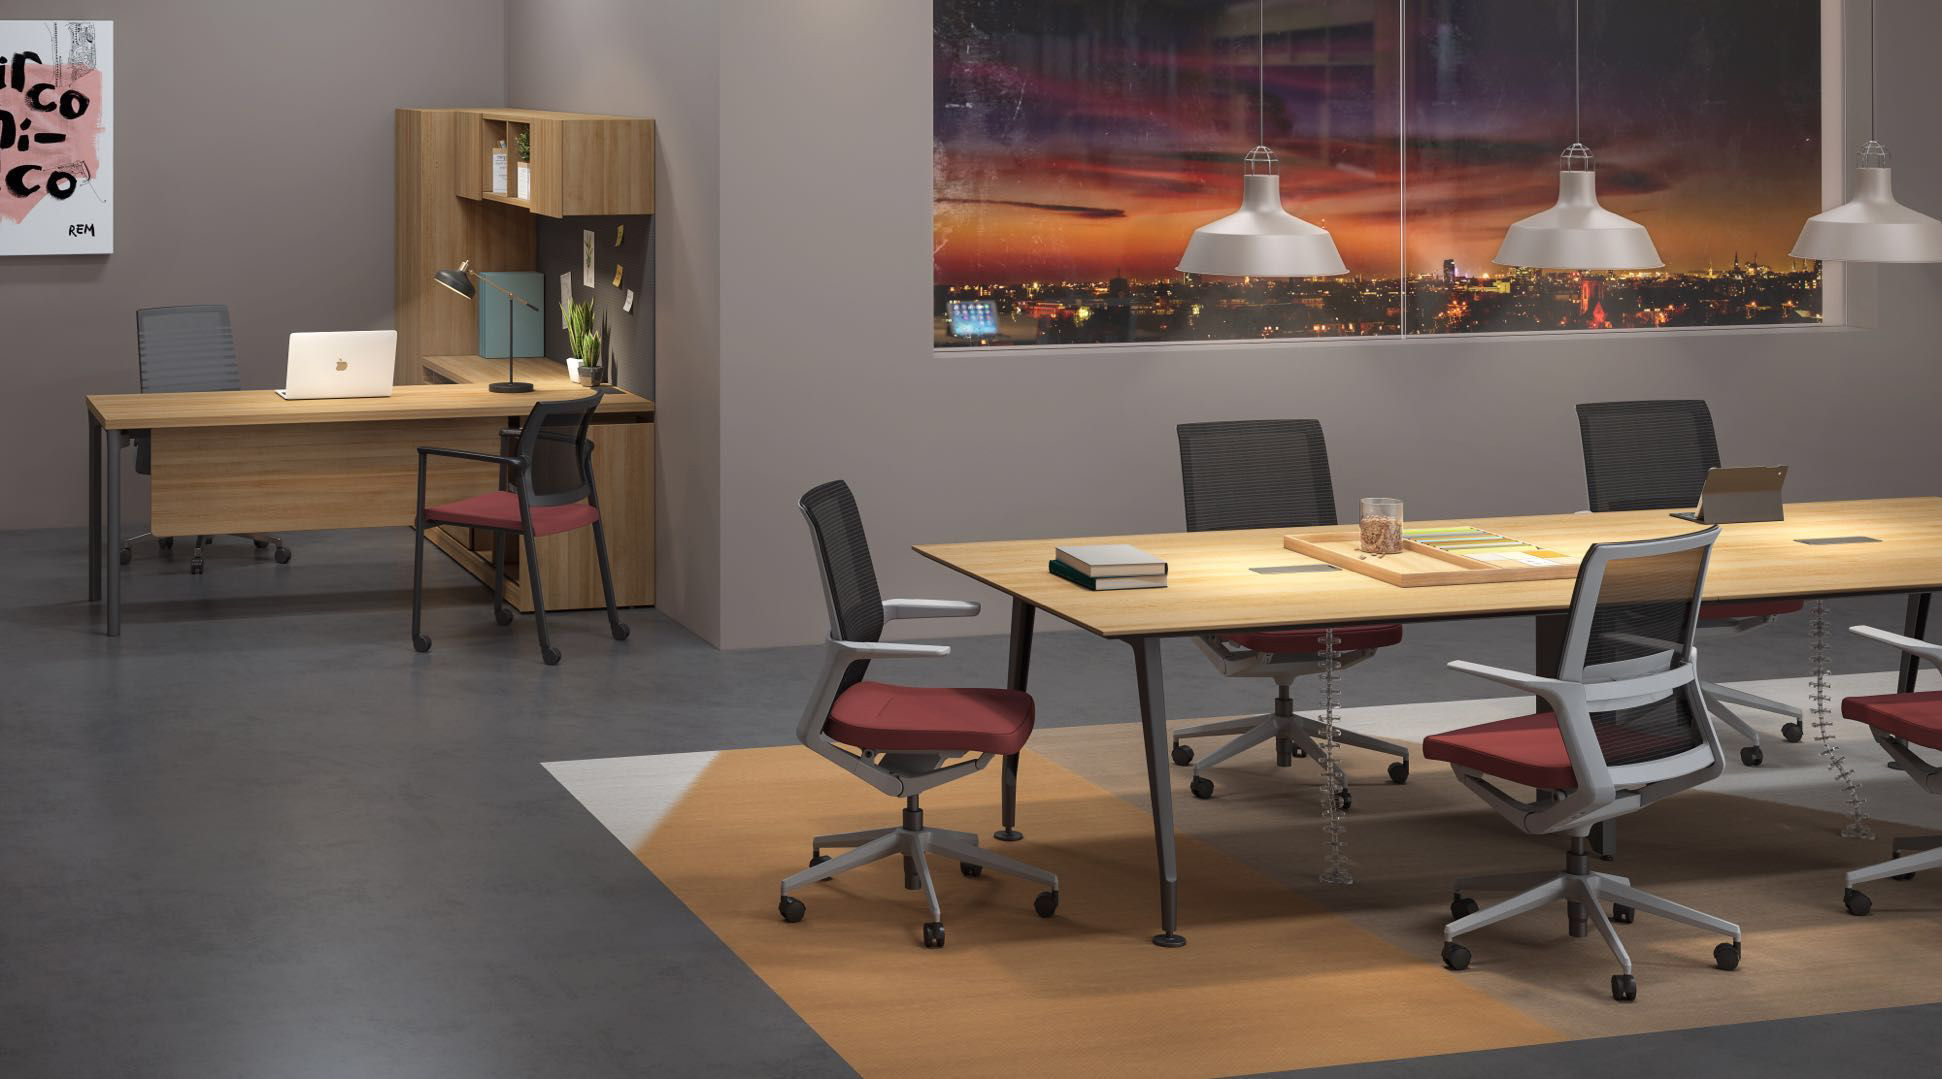 Vello Conference room with private office space_Smarti MP w orange seat_FD Series conference table.jpg